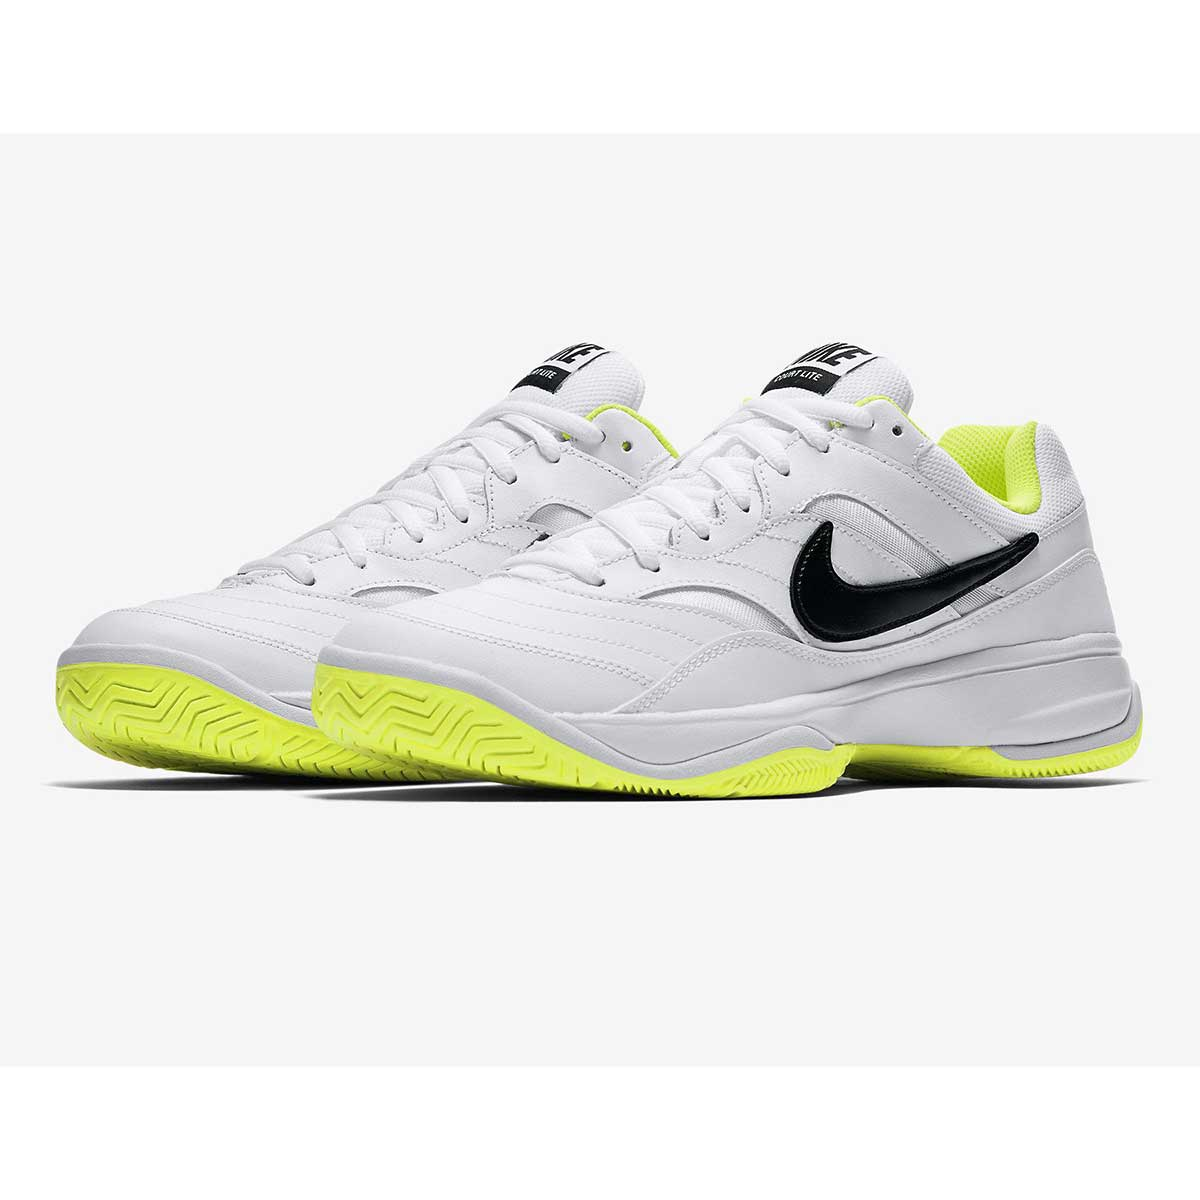 Tennis Shoes, Tennis, Sports, Buy, Nike, Nike Court Lite Tennis Shoes  (White/Black/Volt)